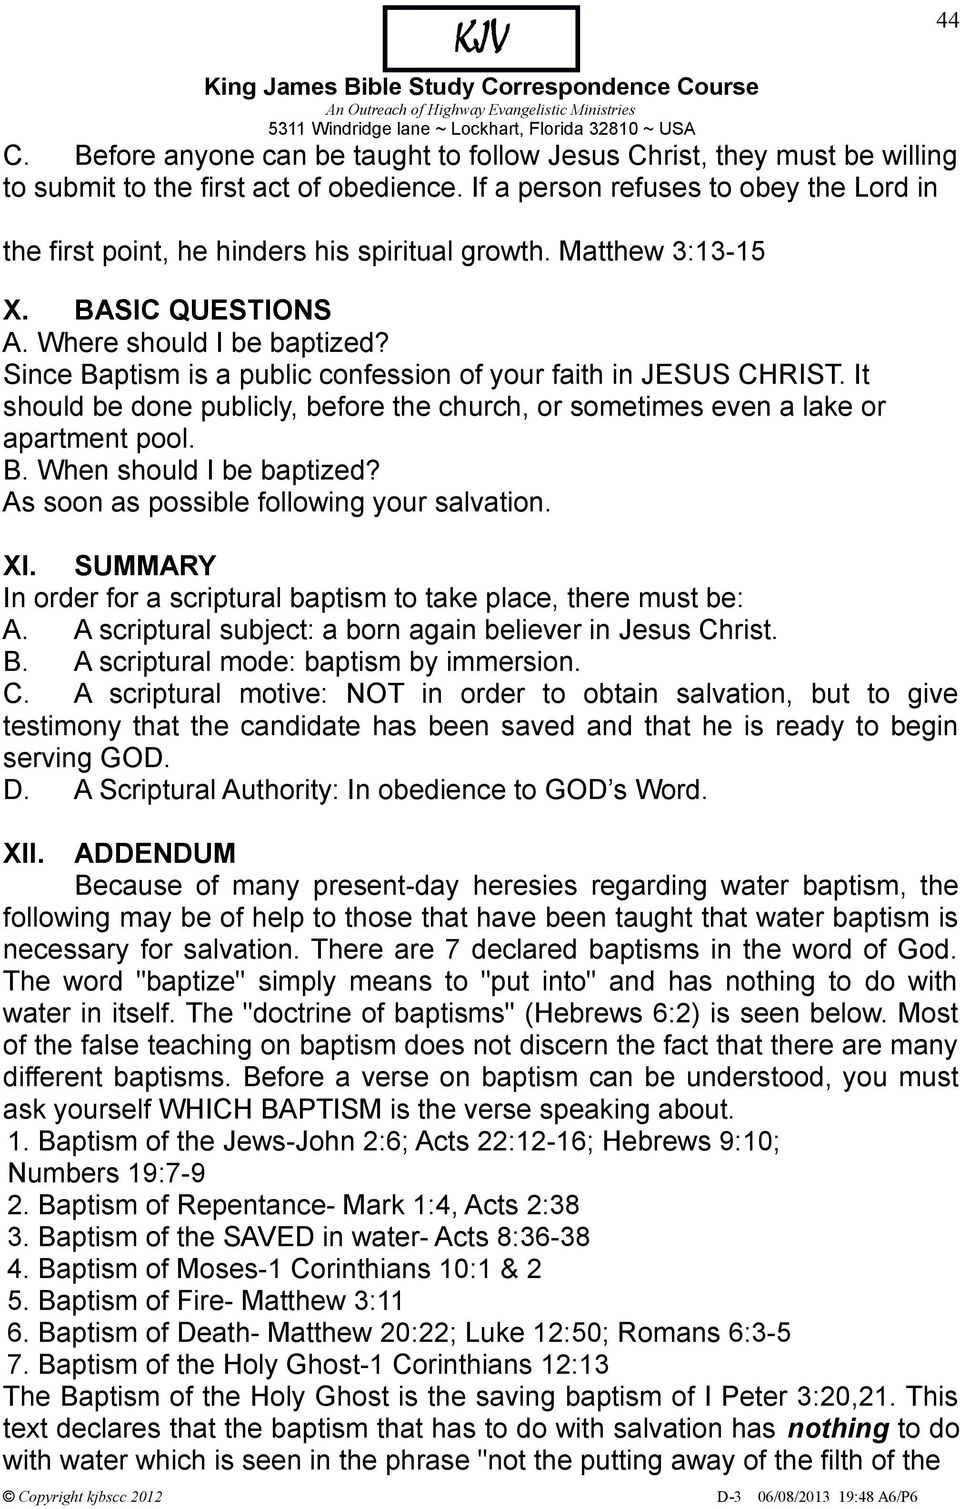 Since Baptism is a public confession of your faith in JESUS CHRIST. It should be done publicly, before the church, or sometimes even a lake or apartment pool. When should I be baptized?